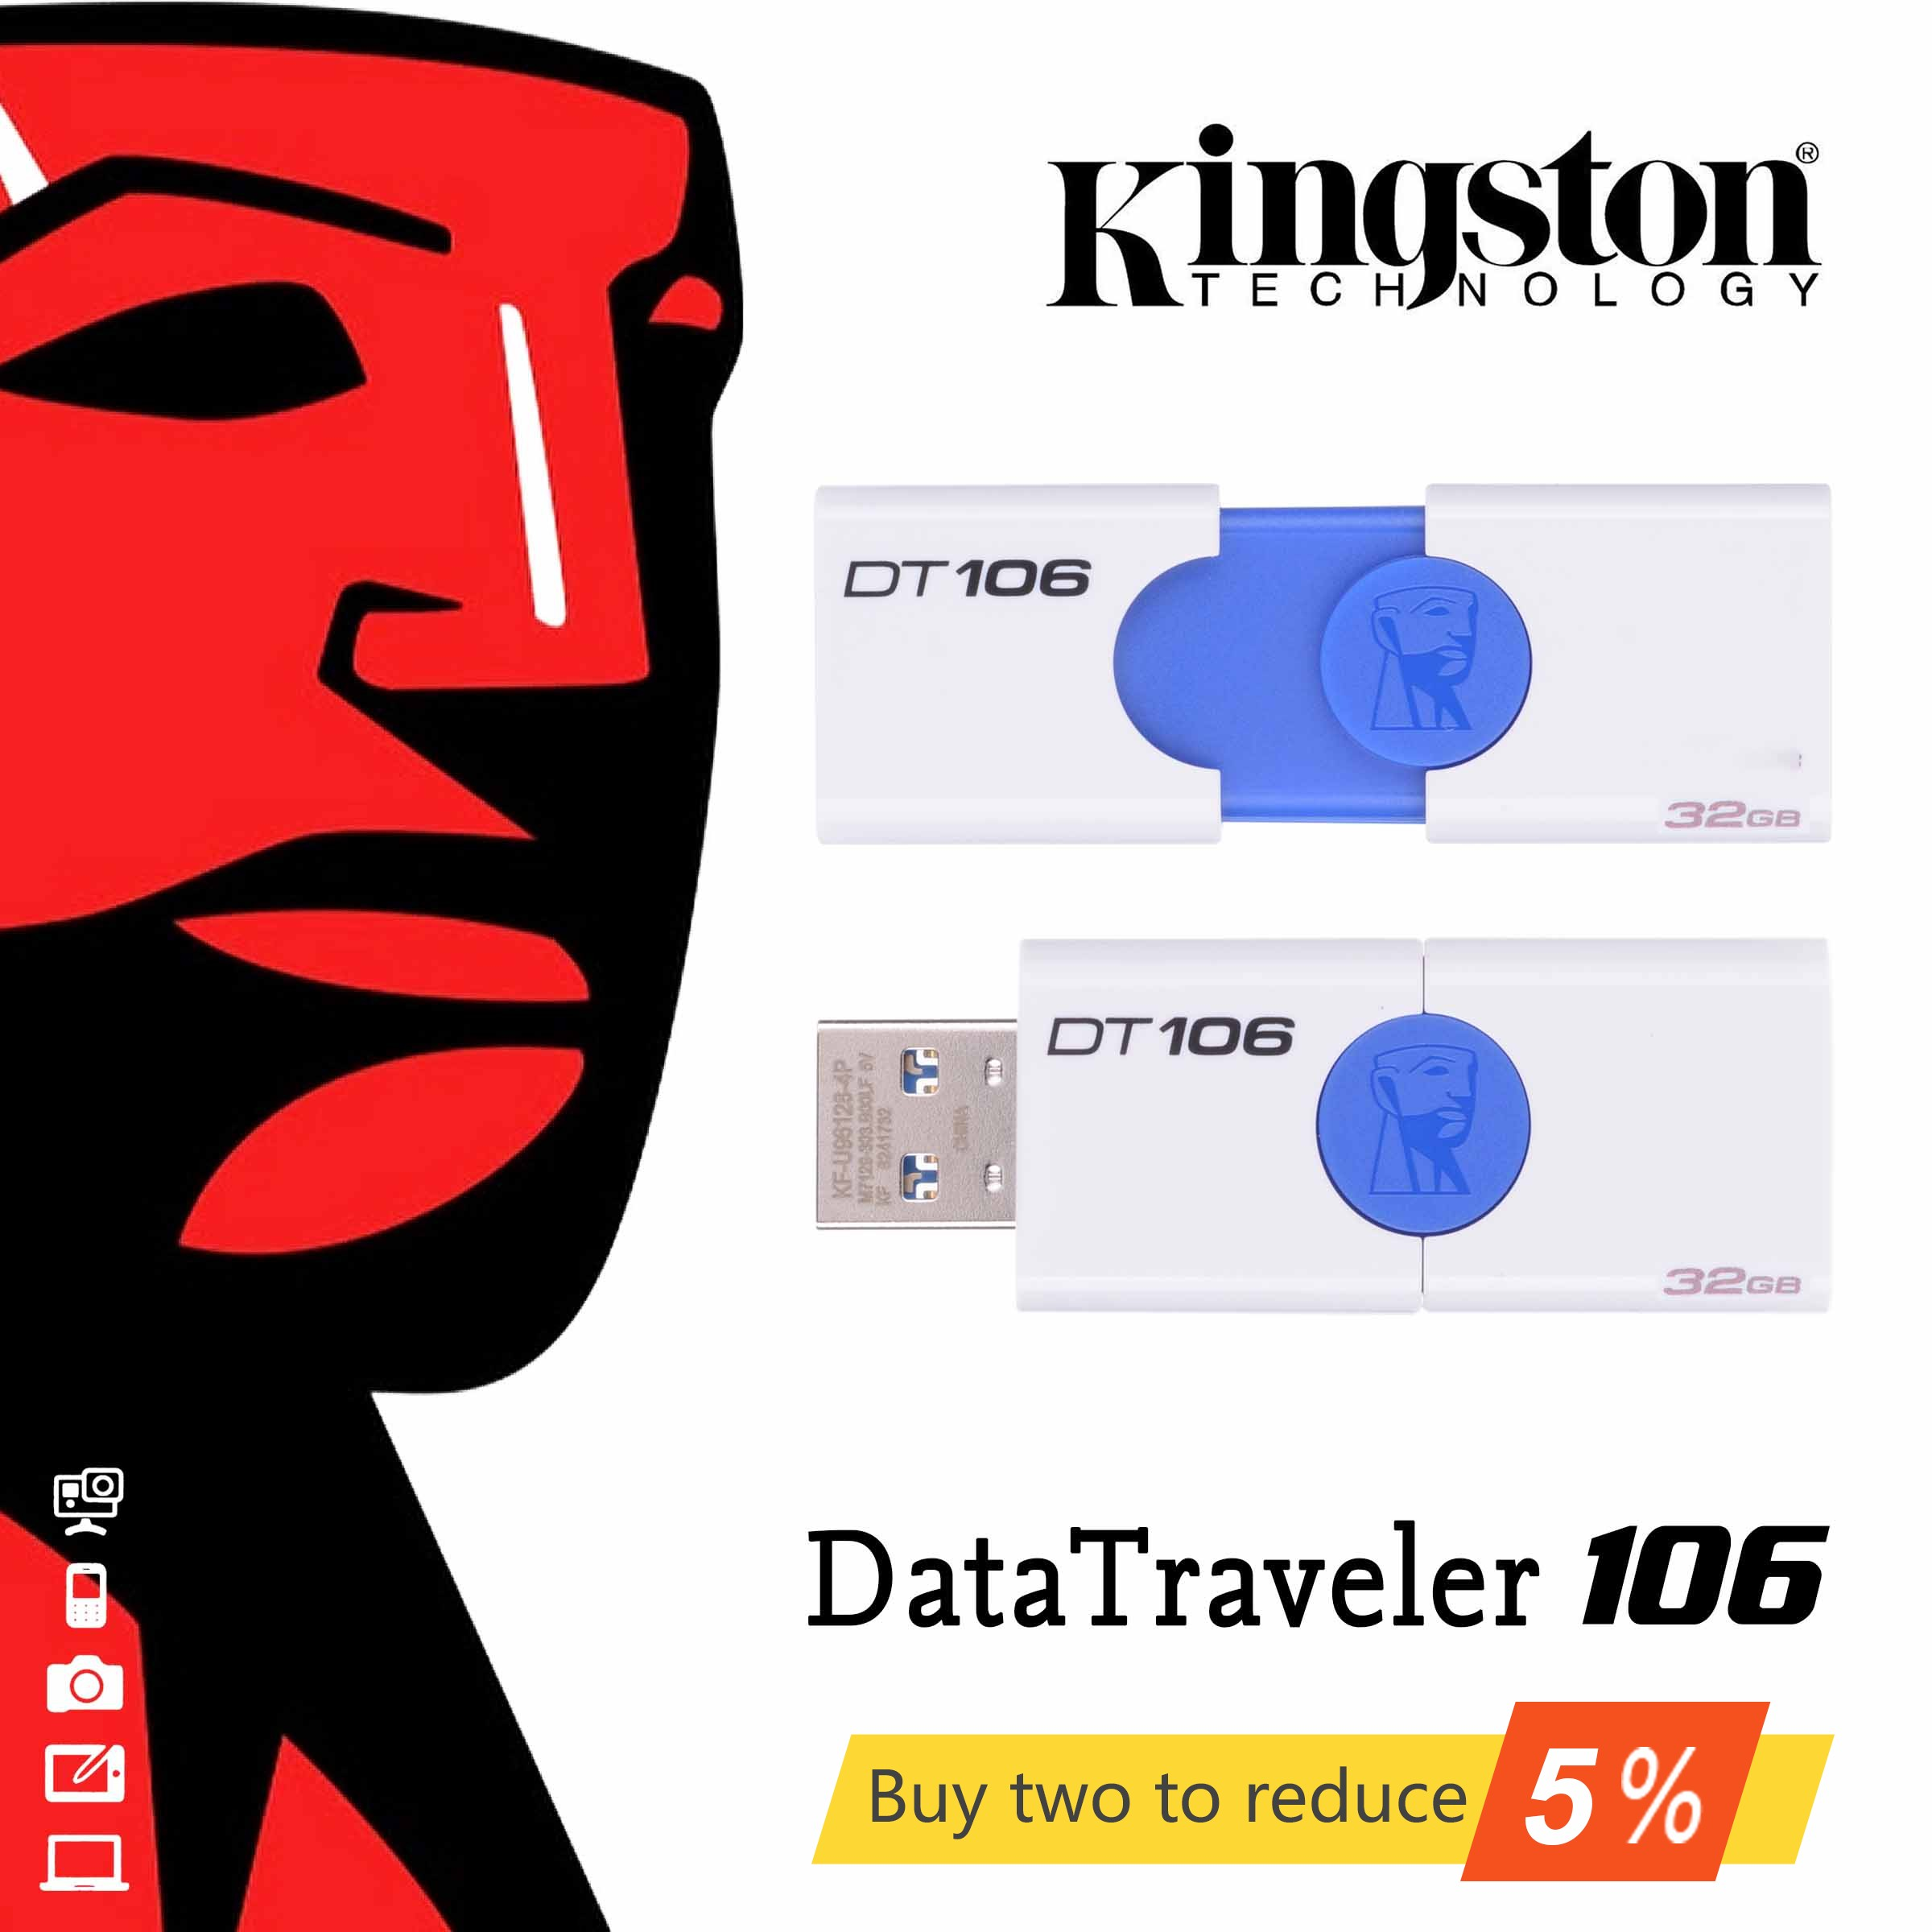 DT106 Original USB 3.0 Kingston DataTraveler 106 USB Flash Drive GB 32 16 GB 64 GB 128 GB U Disco pen Drive Pendrive 16 32 64 128 GB